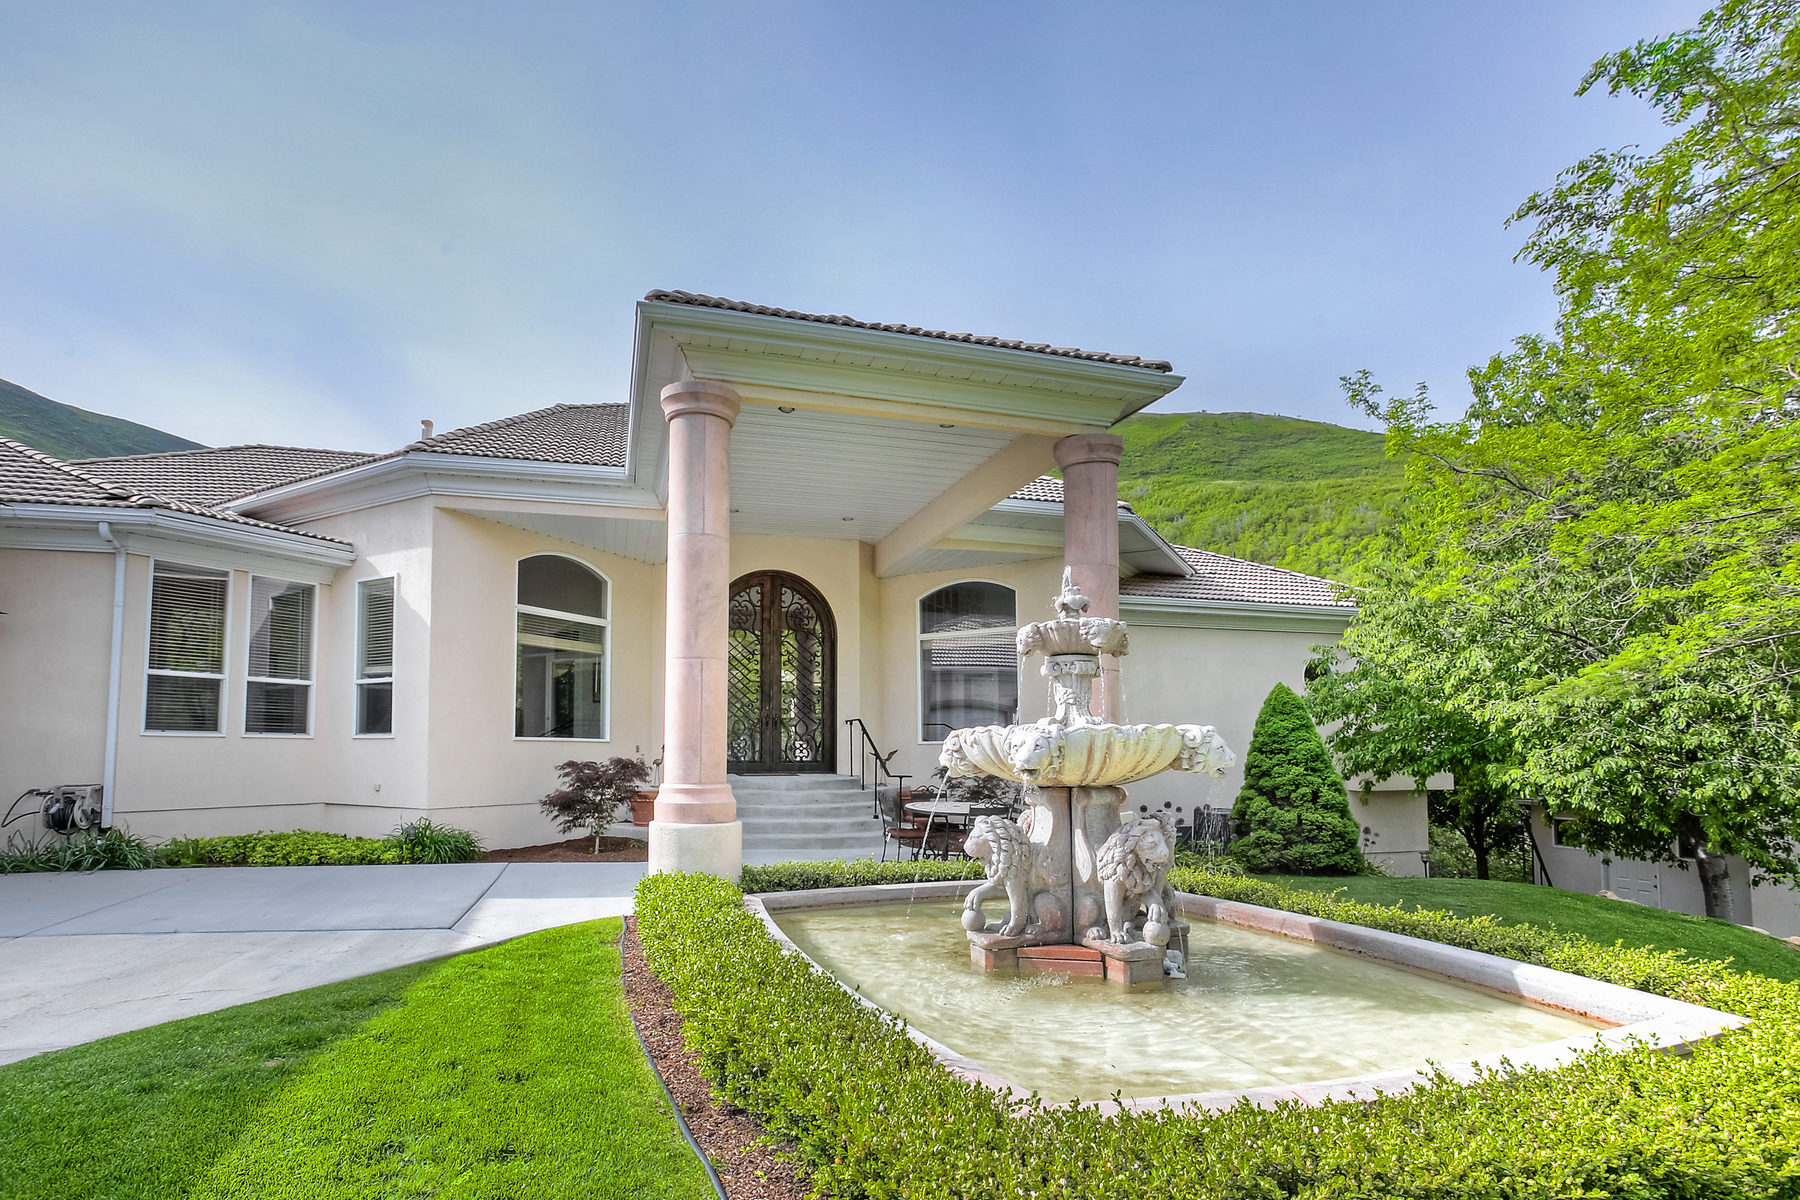 Single Family Home for Sale at Luxury Lifestyle Awaits in Emigration Canyon 4454 Kenbridge Ct Salt Lake City, Utah 84108 United States